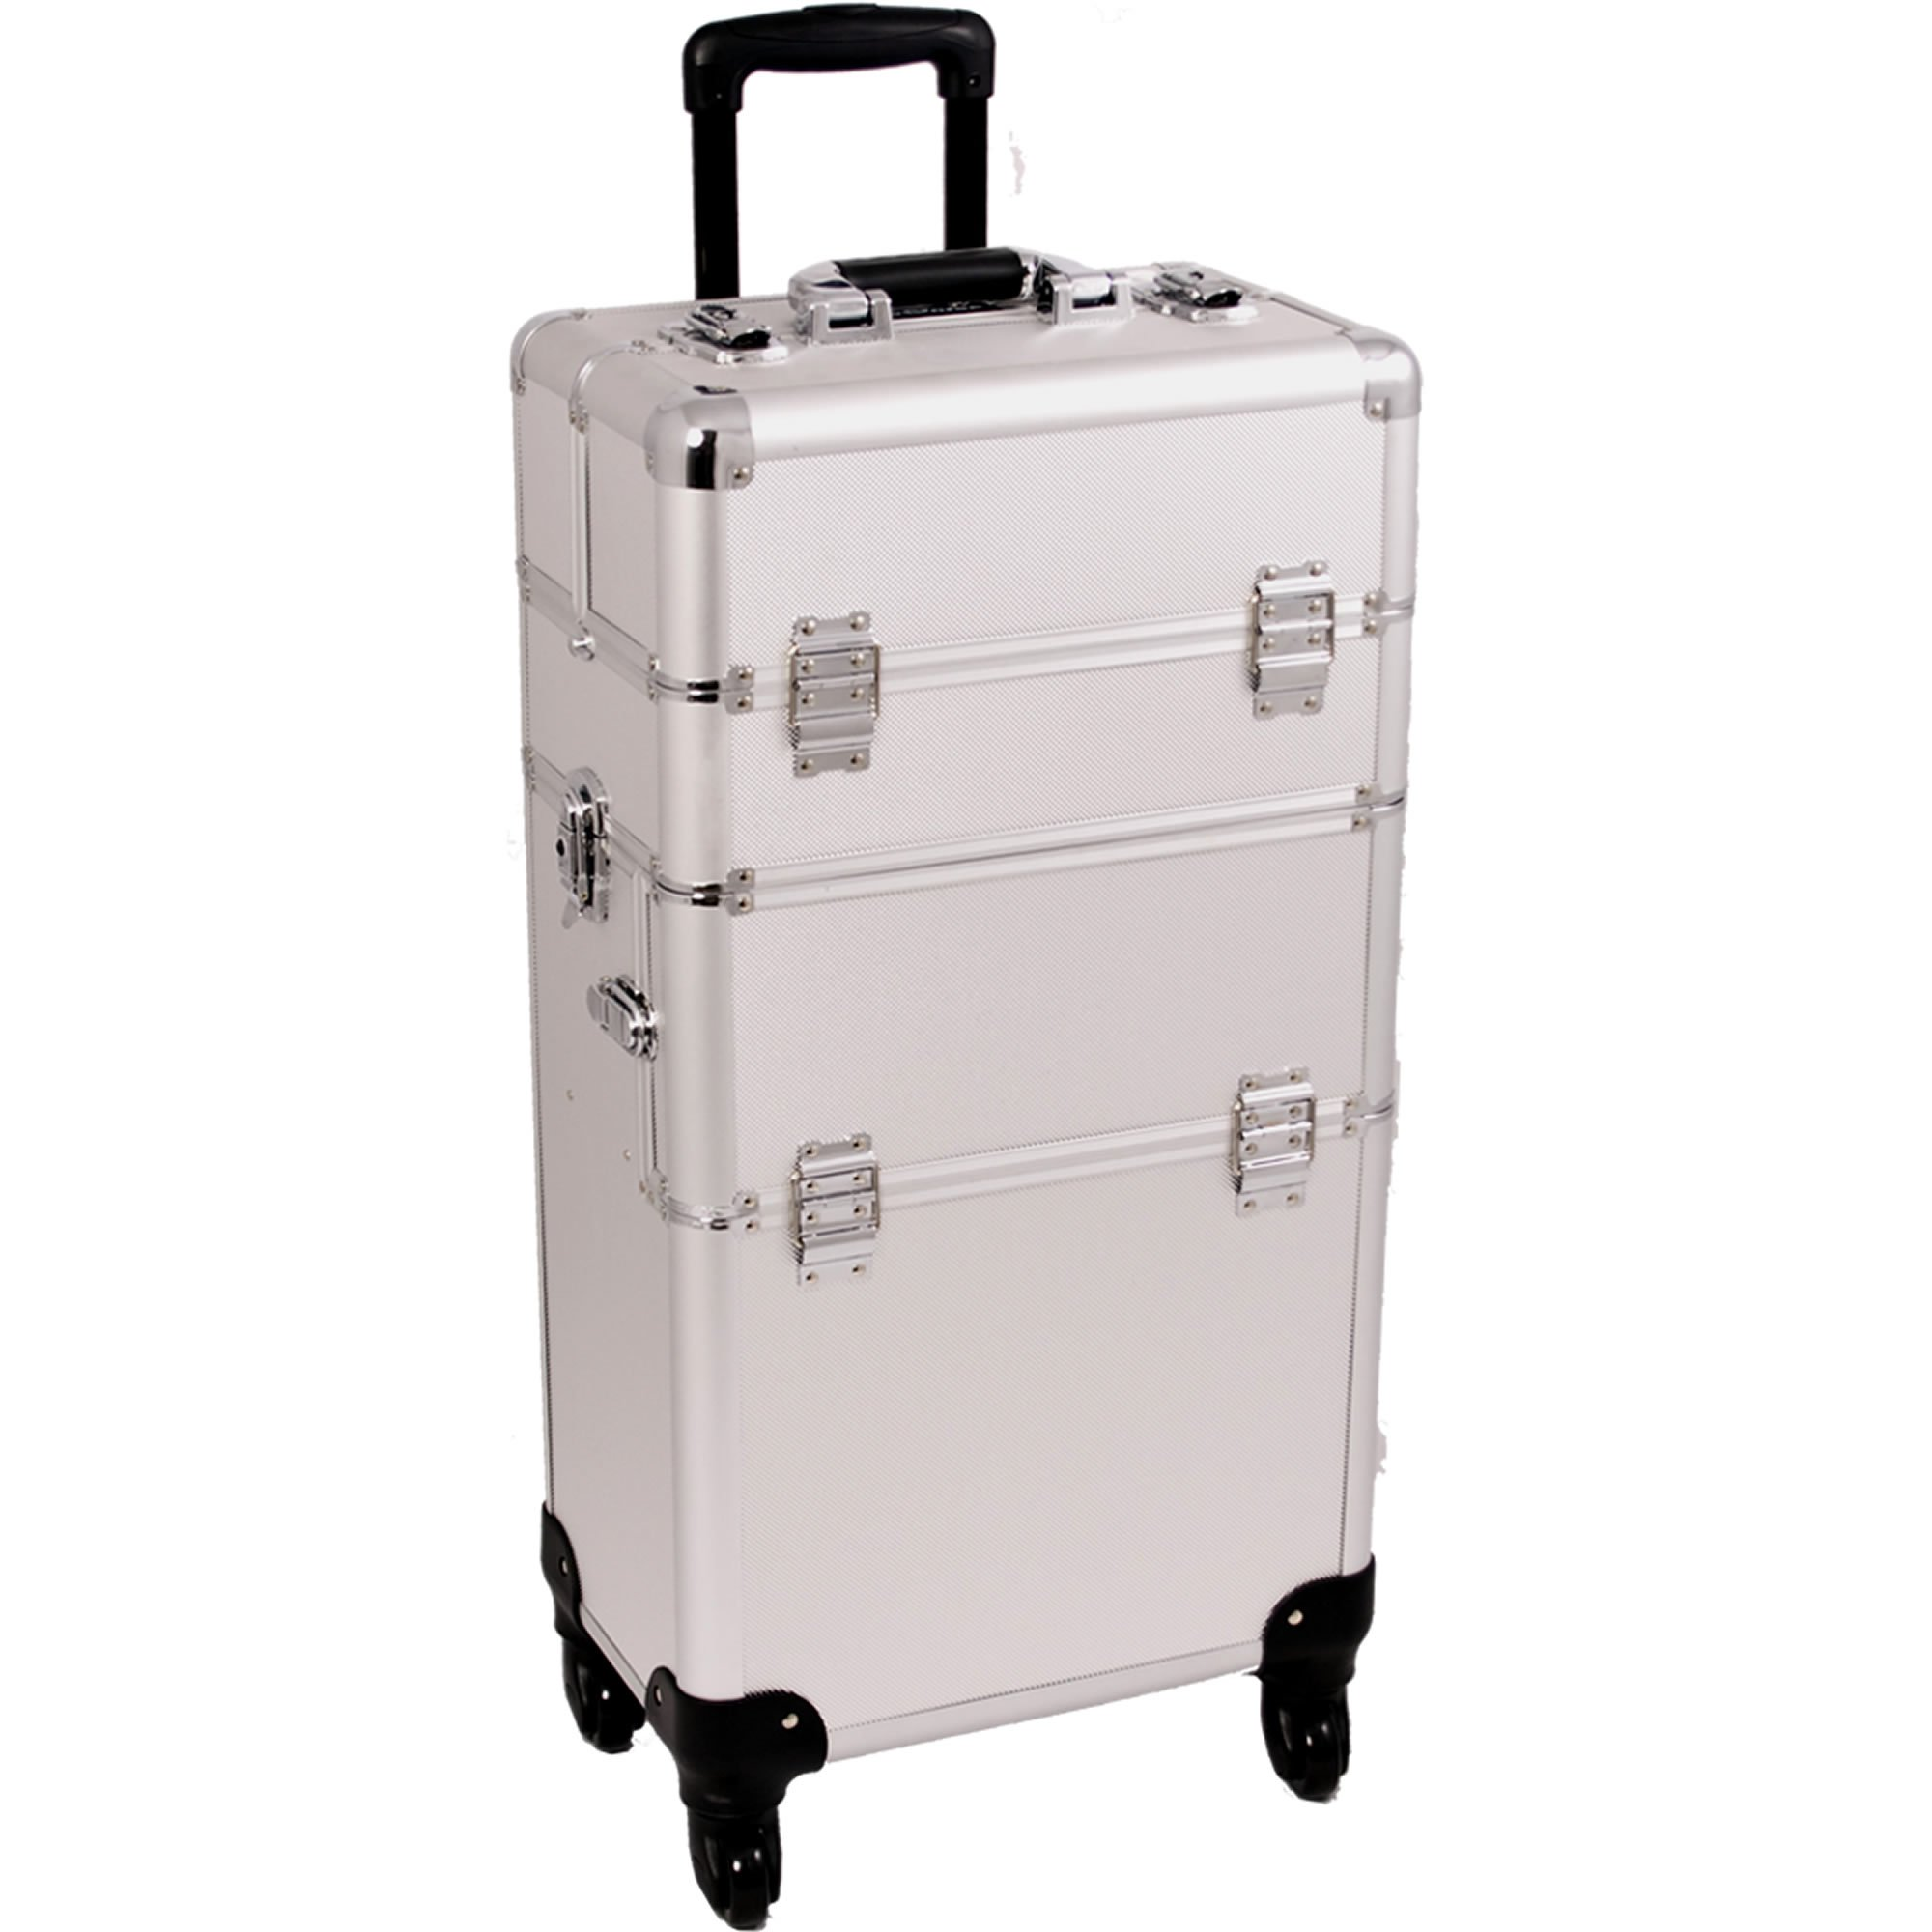 SUNRISE Makeup Case on Wheels 2 in 1 I3561 Hair Stylist Professional, 3 Trays and 1 Removable Tray, Locking with 2 Mirrors, Brush Holder and Shoulder Strap, Silver Dot